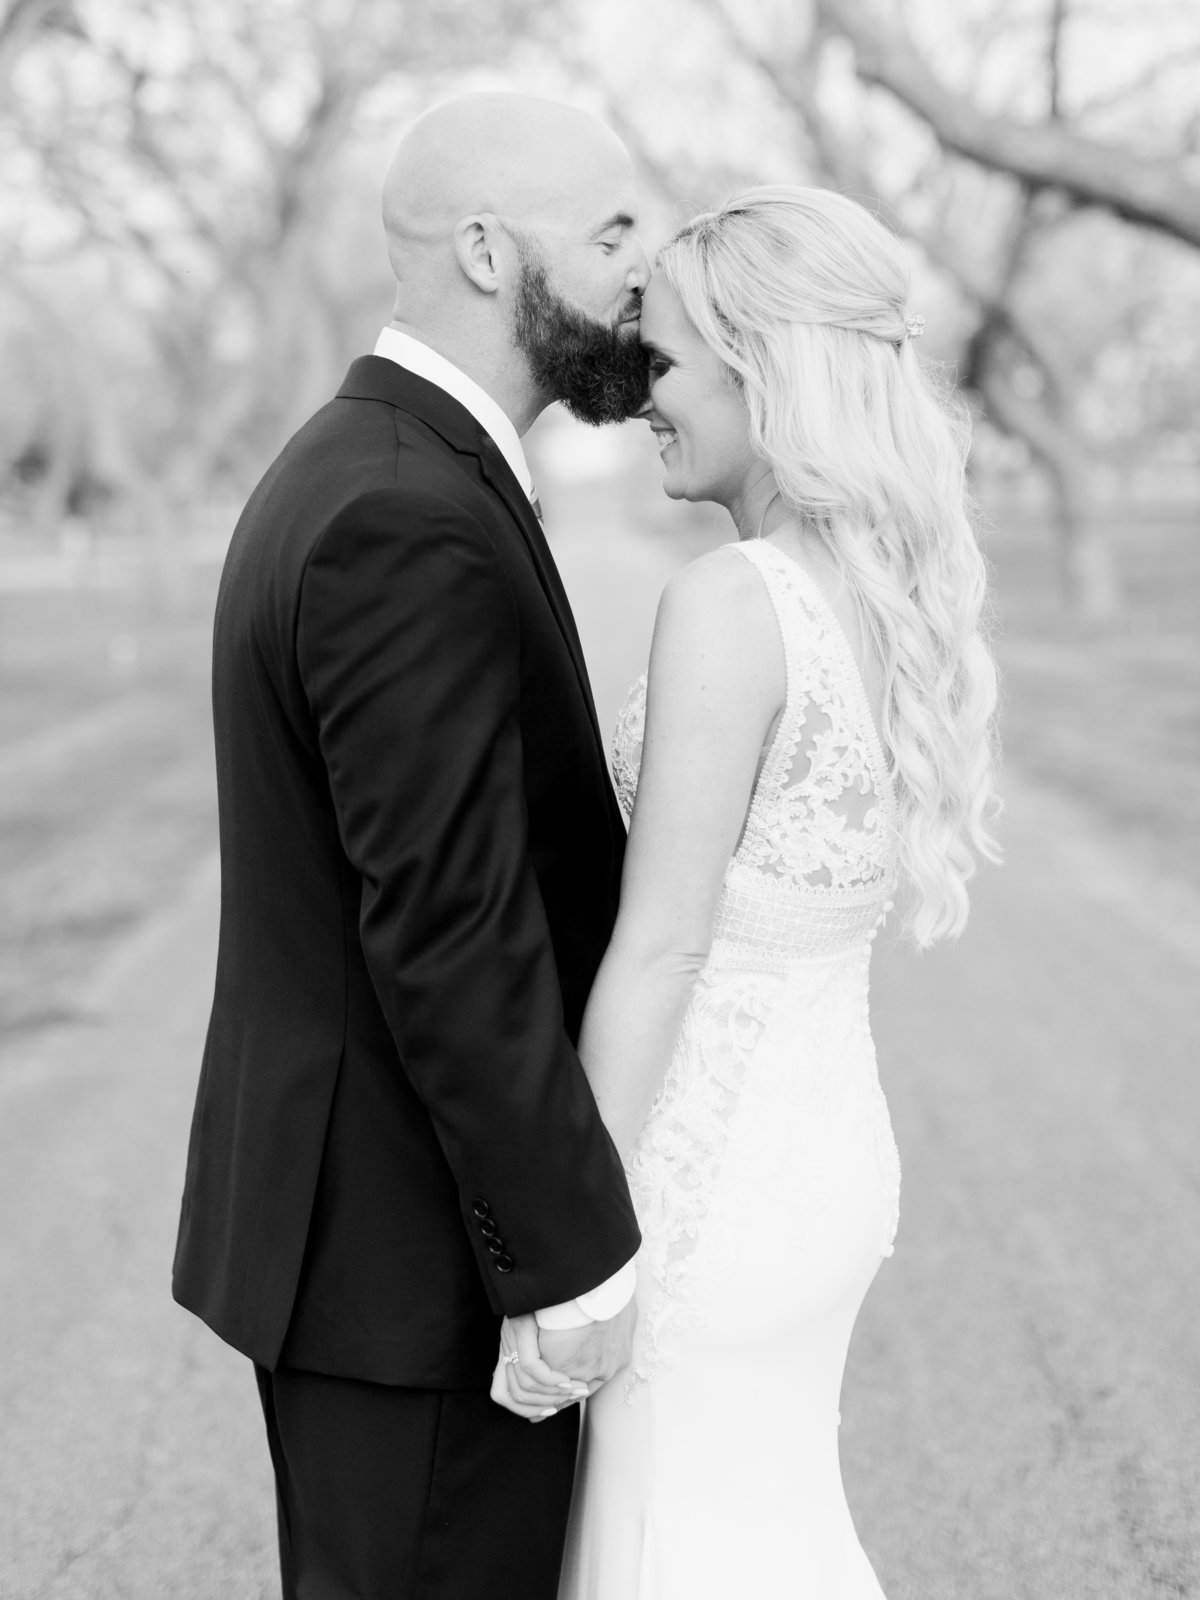 LaurenandJamesWedding-1418